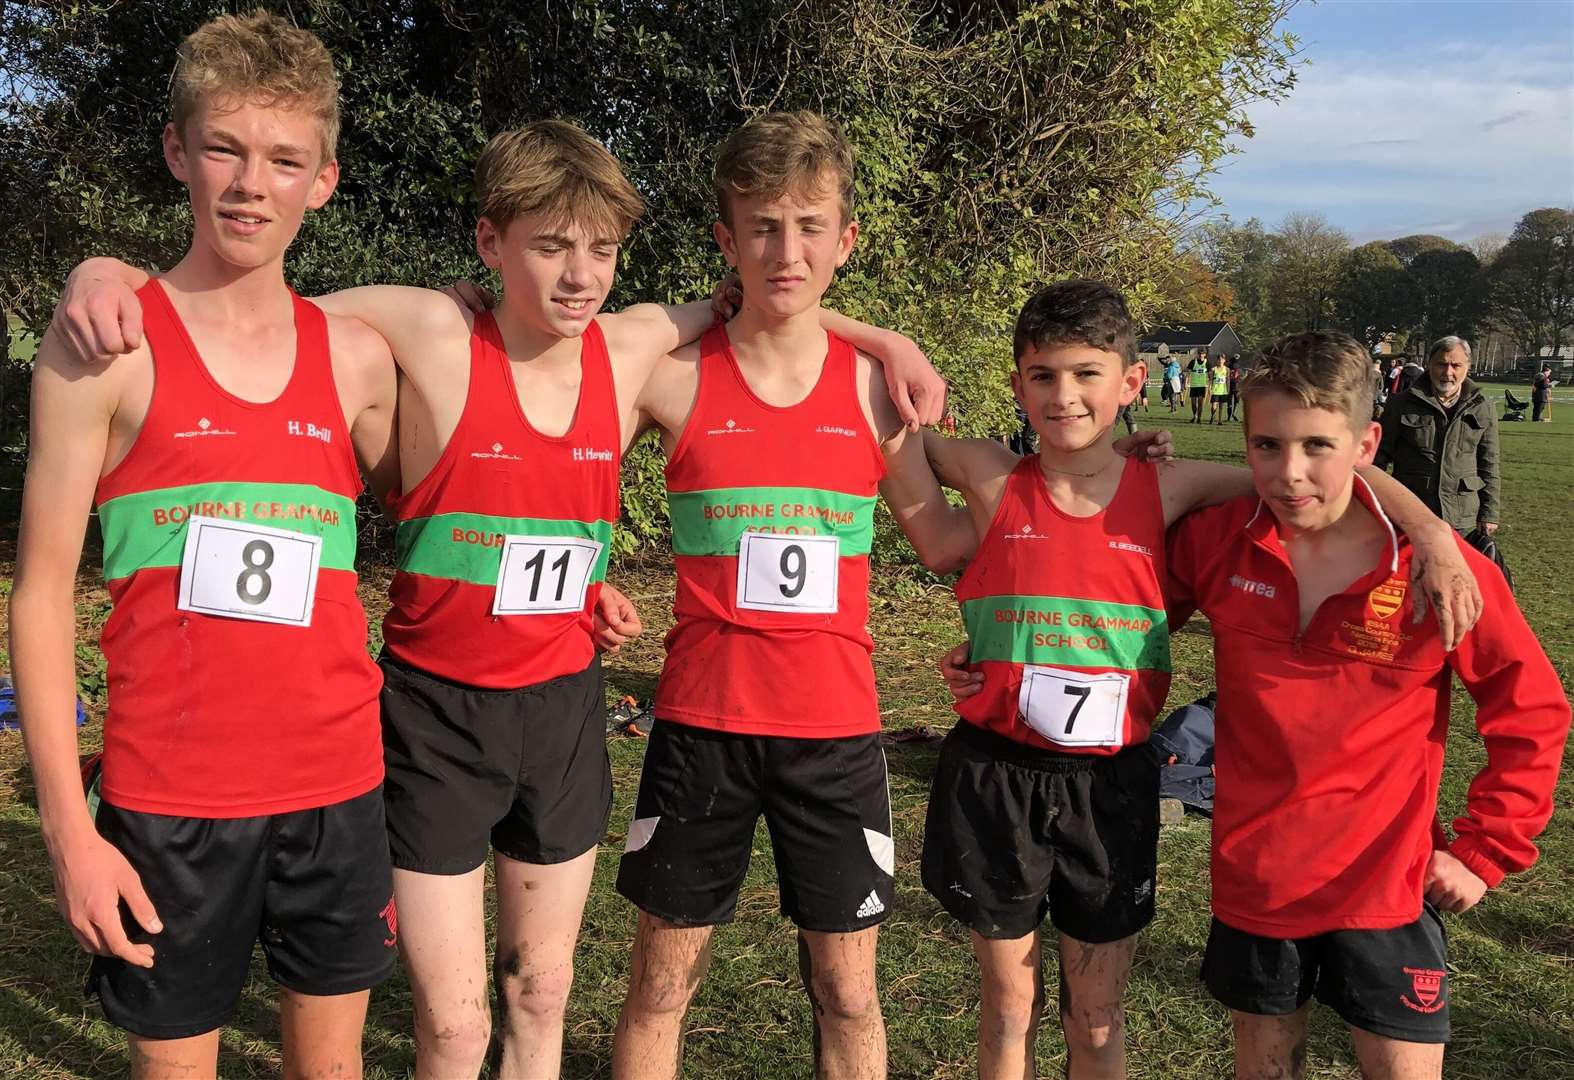 CROSS COUNTRY: Harry heads field to reach national final